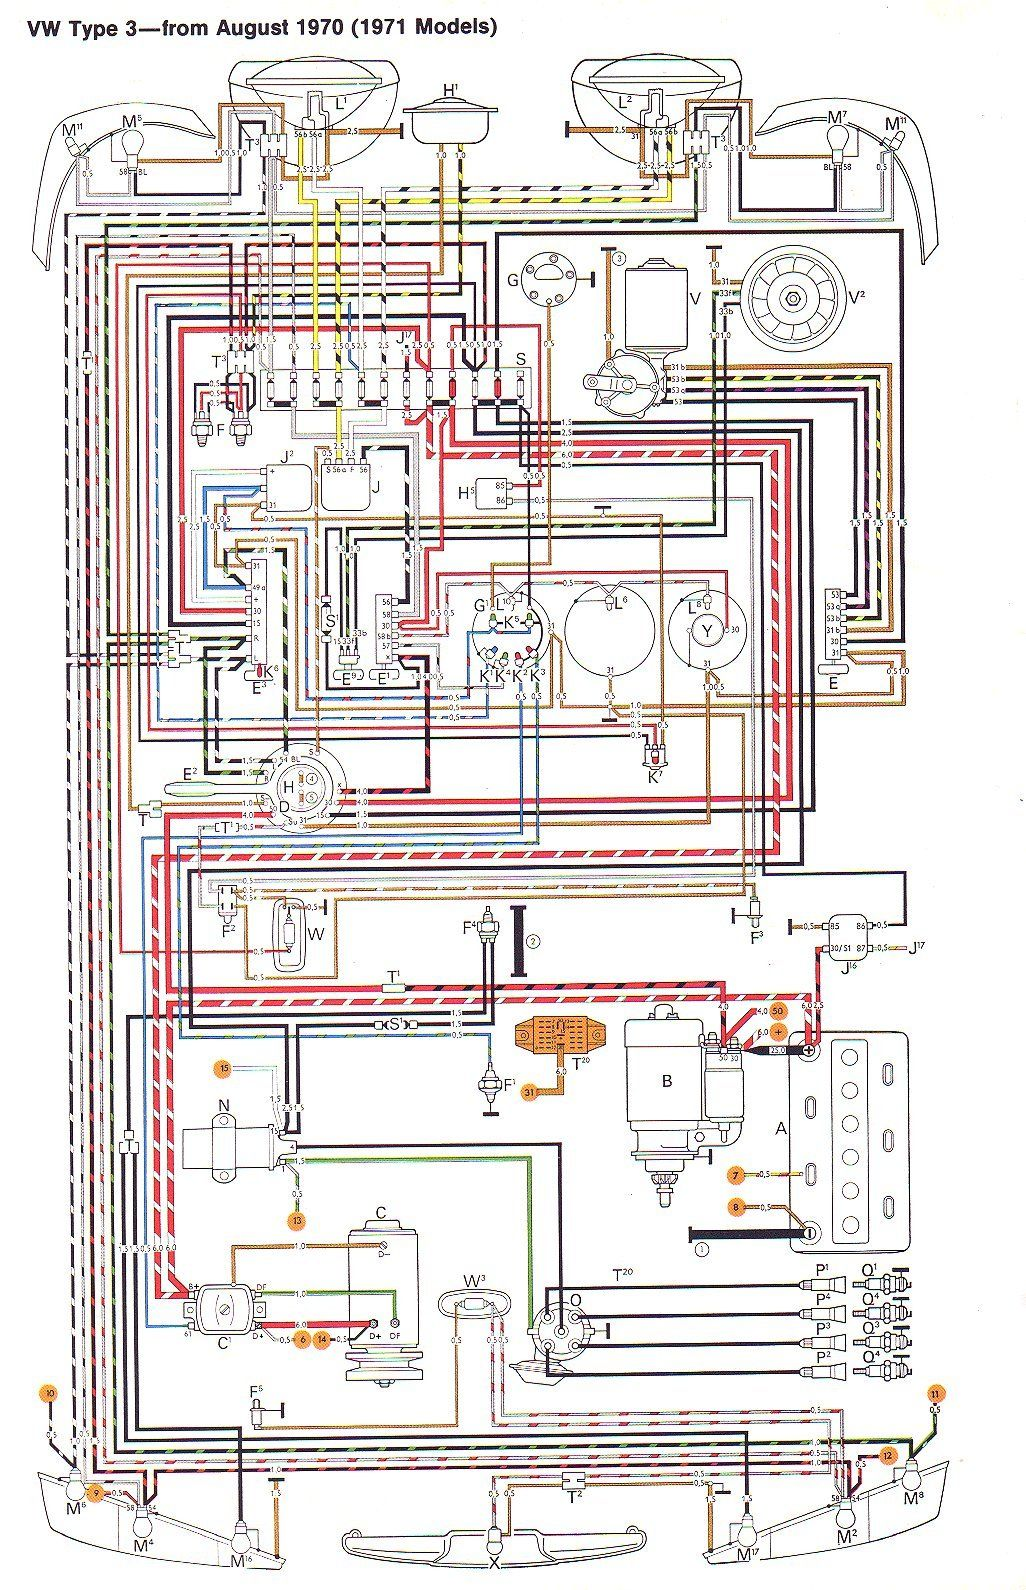 e0db58370f79a63d02d45f00cf63f44a 71 vw t3 wiring diagram ruthie pinterest volkswagen, engine vw mk1 wiring diagram at n-0.co